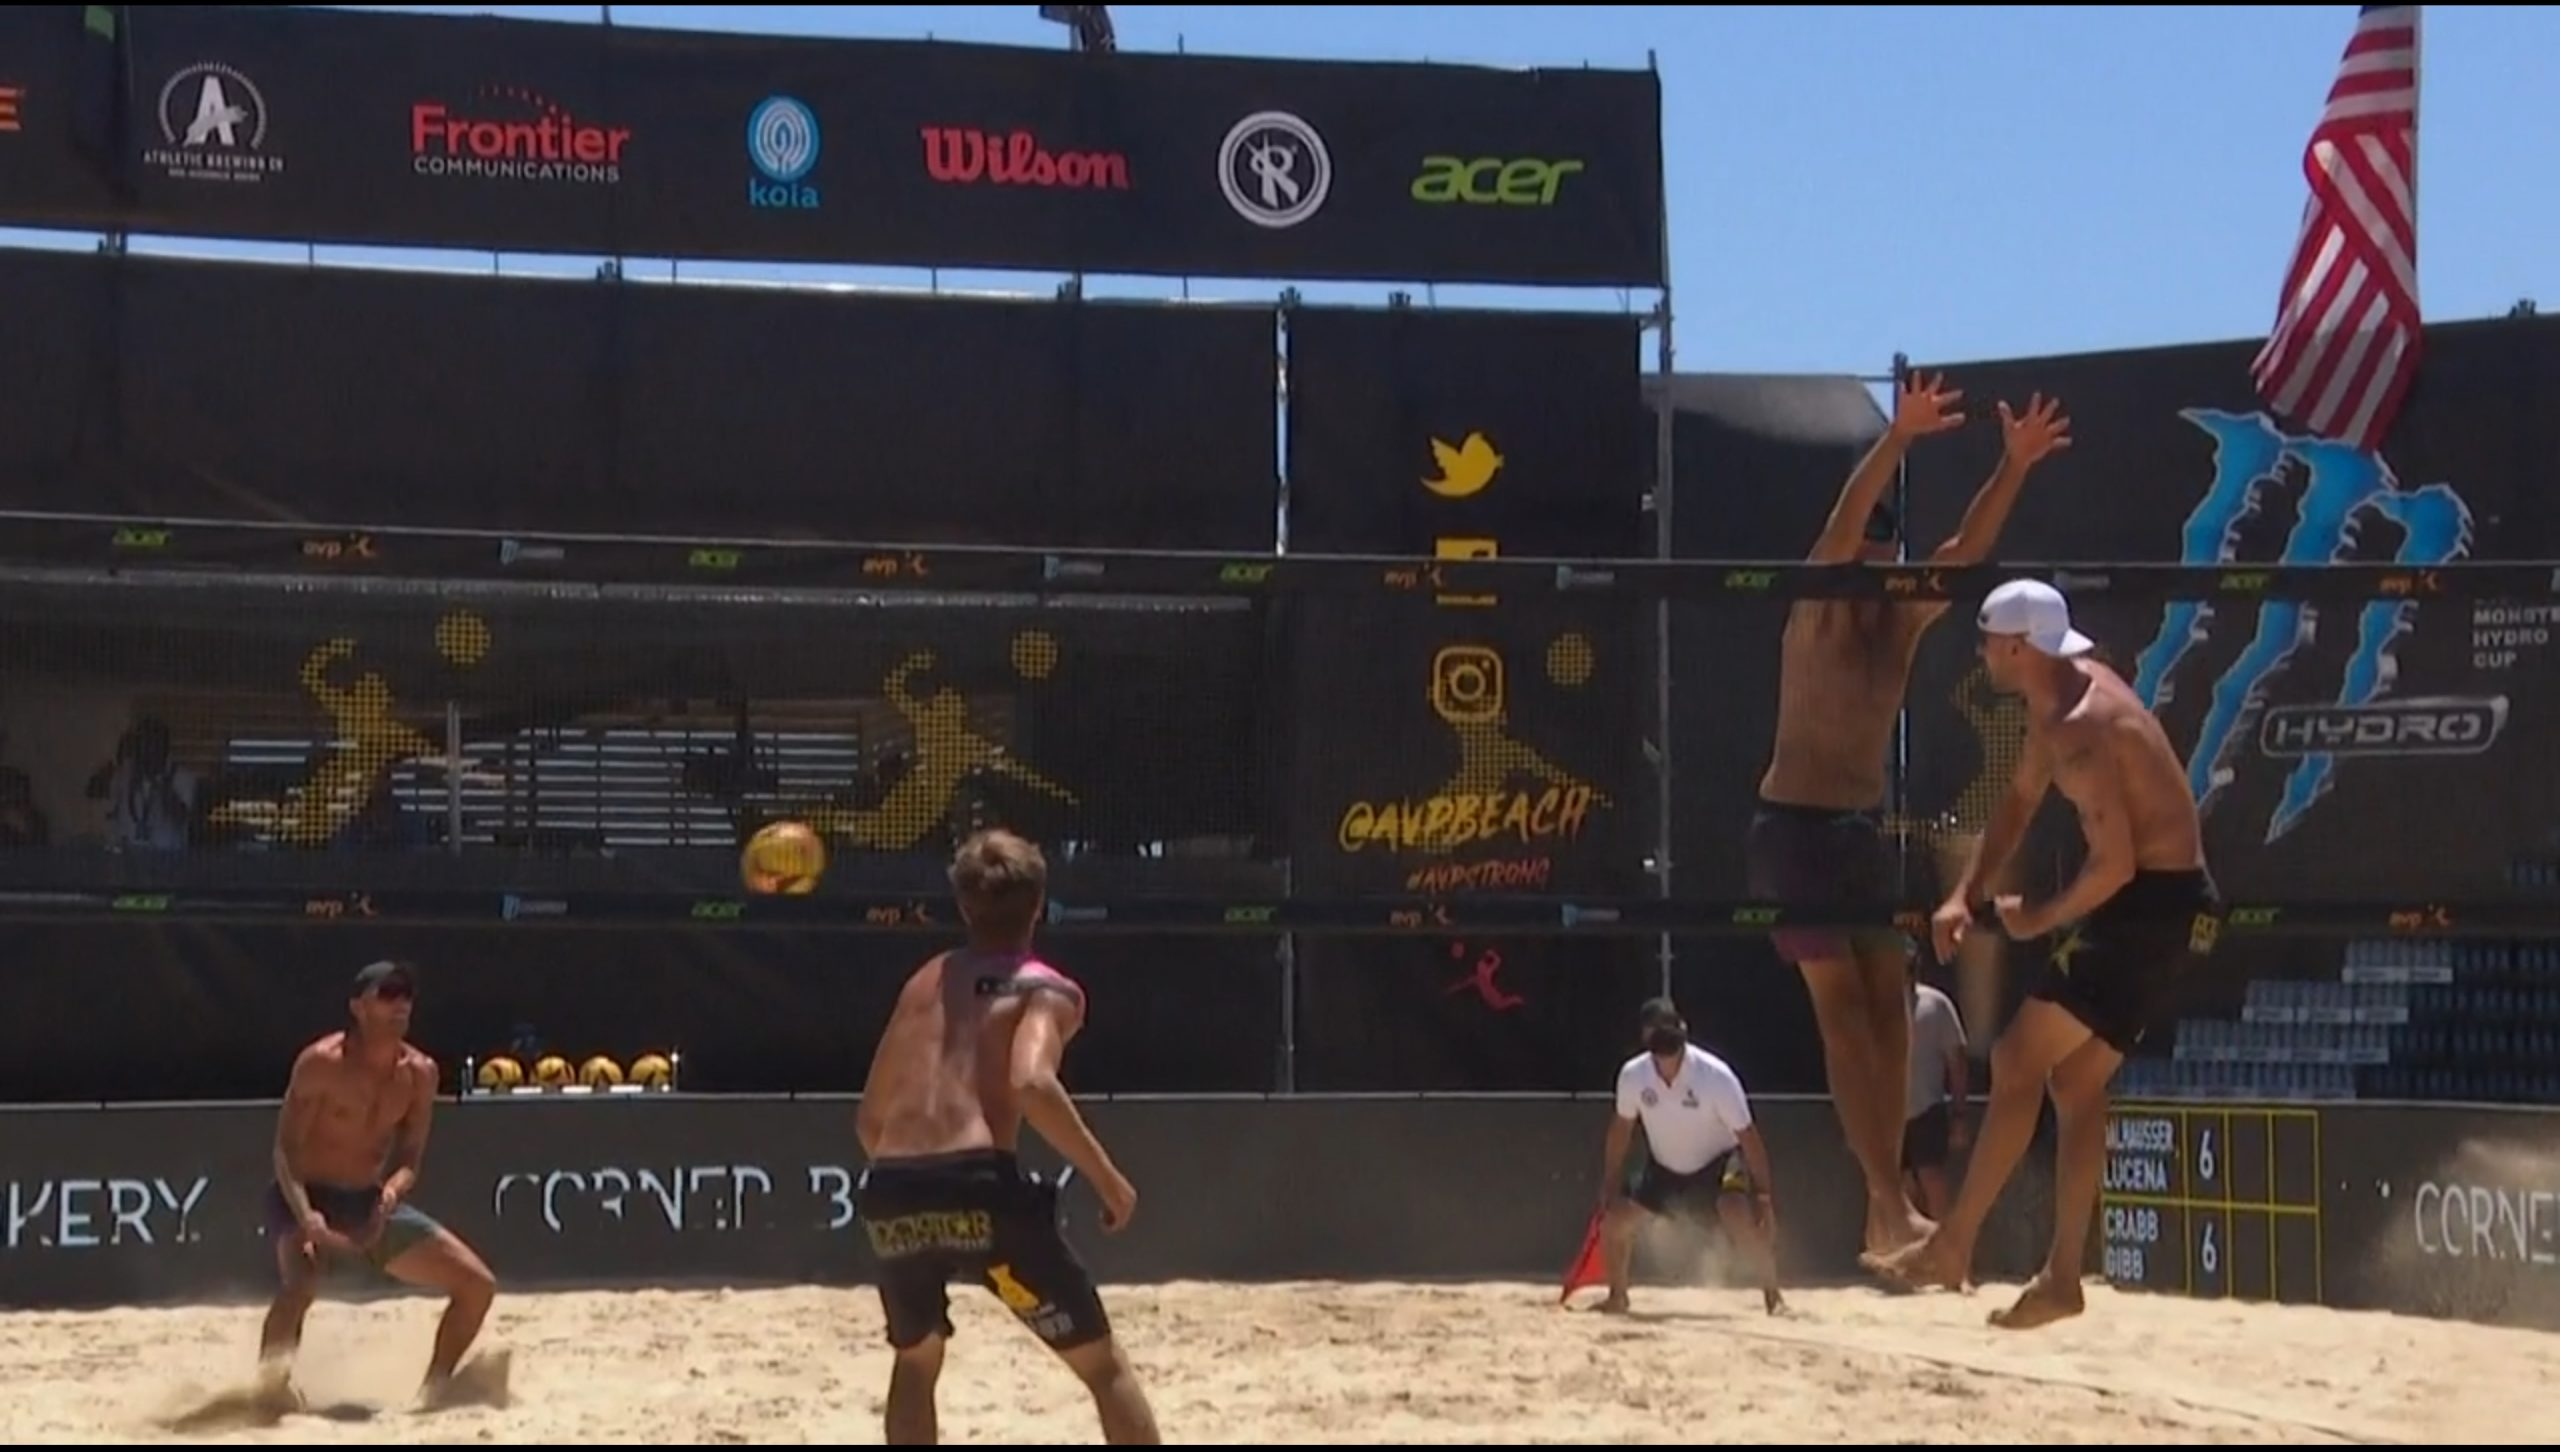 Avp Champions Cup Series Offers Live Socially Distanced Beach Volleyball On Nbc Amazon Prime